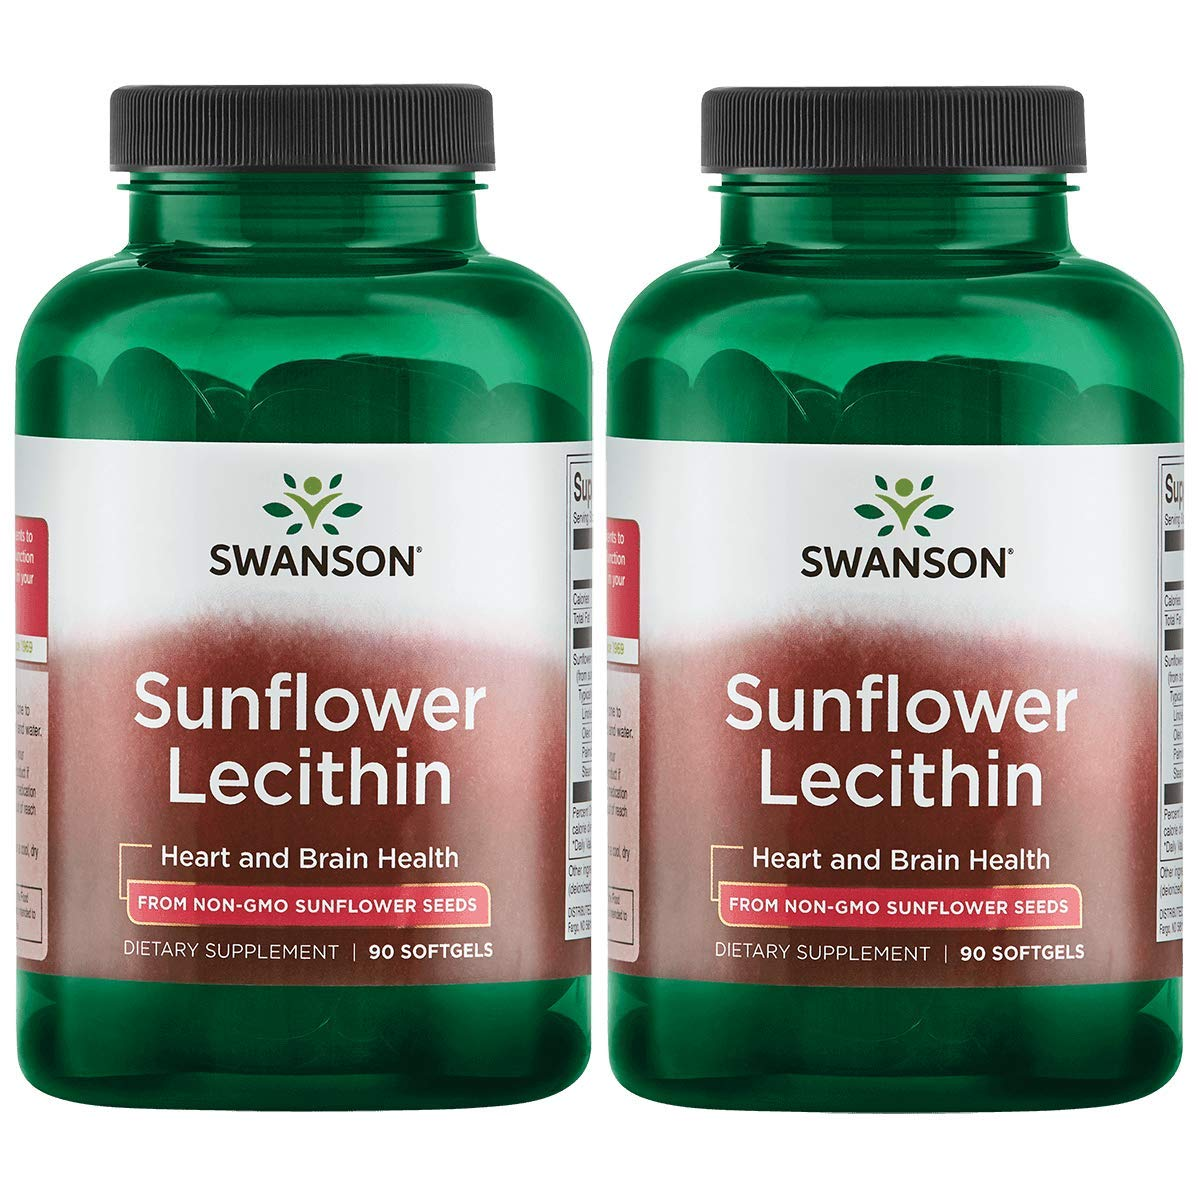 Swanson Sunflower Lecithin Non-GMO 1,200 mg 90 Sgels 2 Pack by Swanson